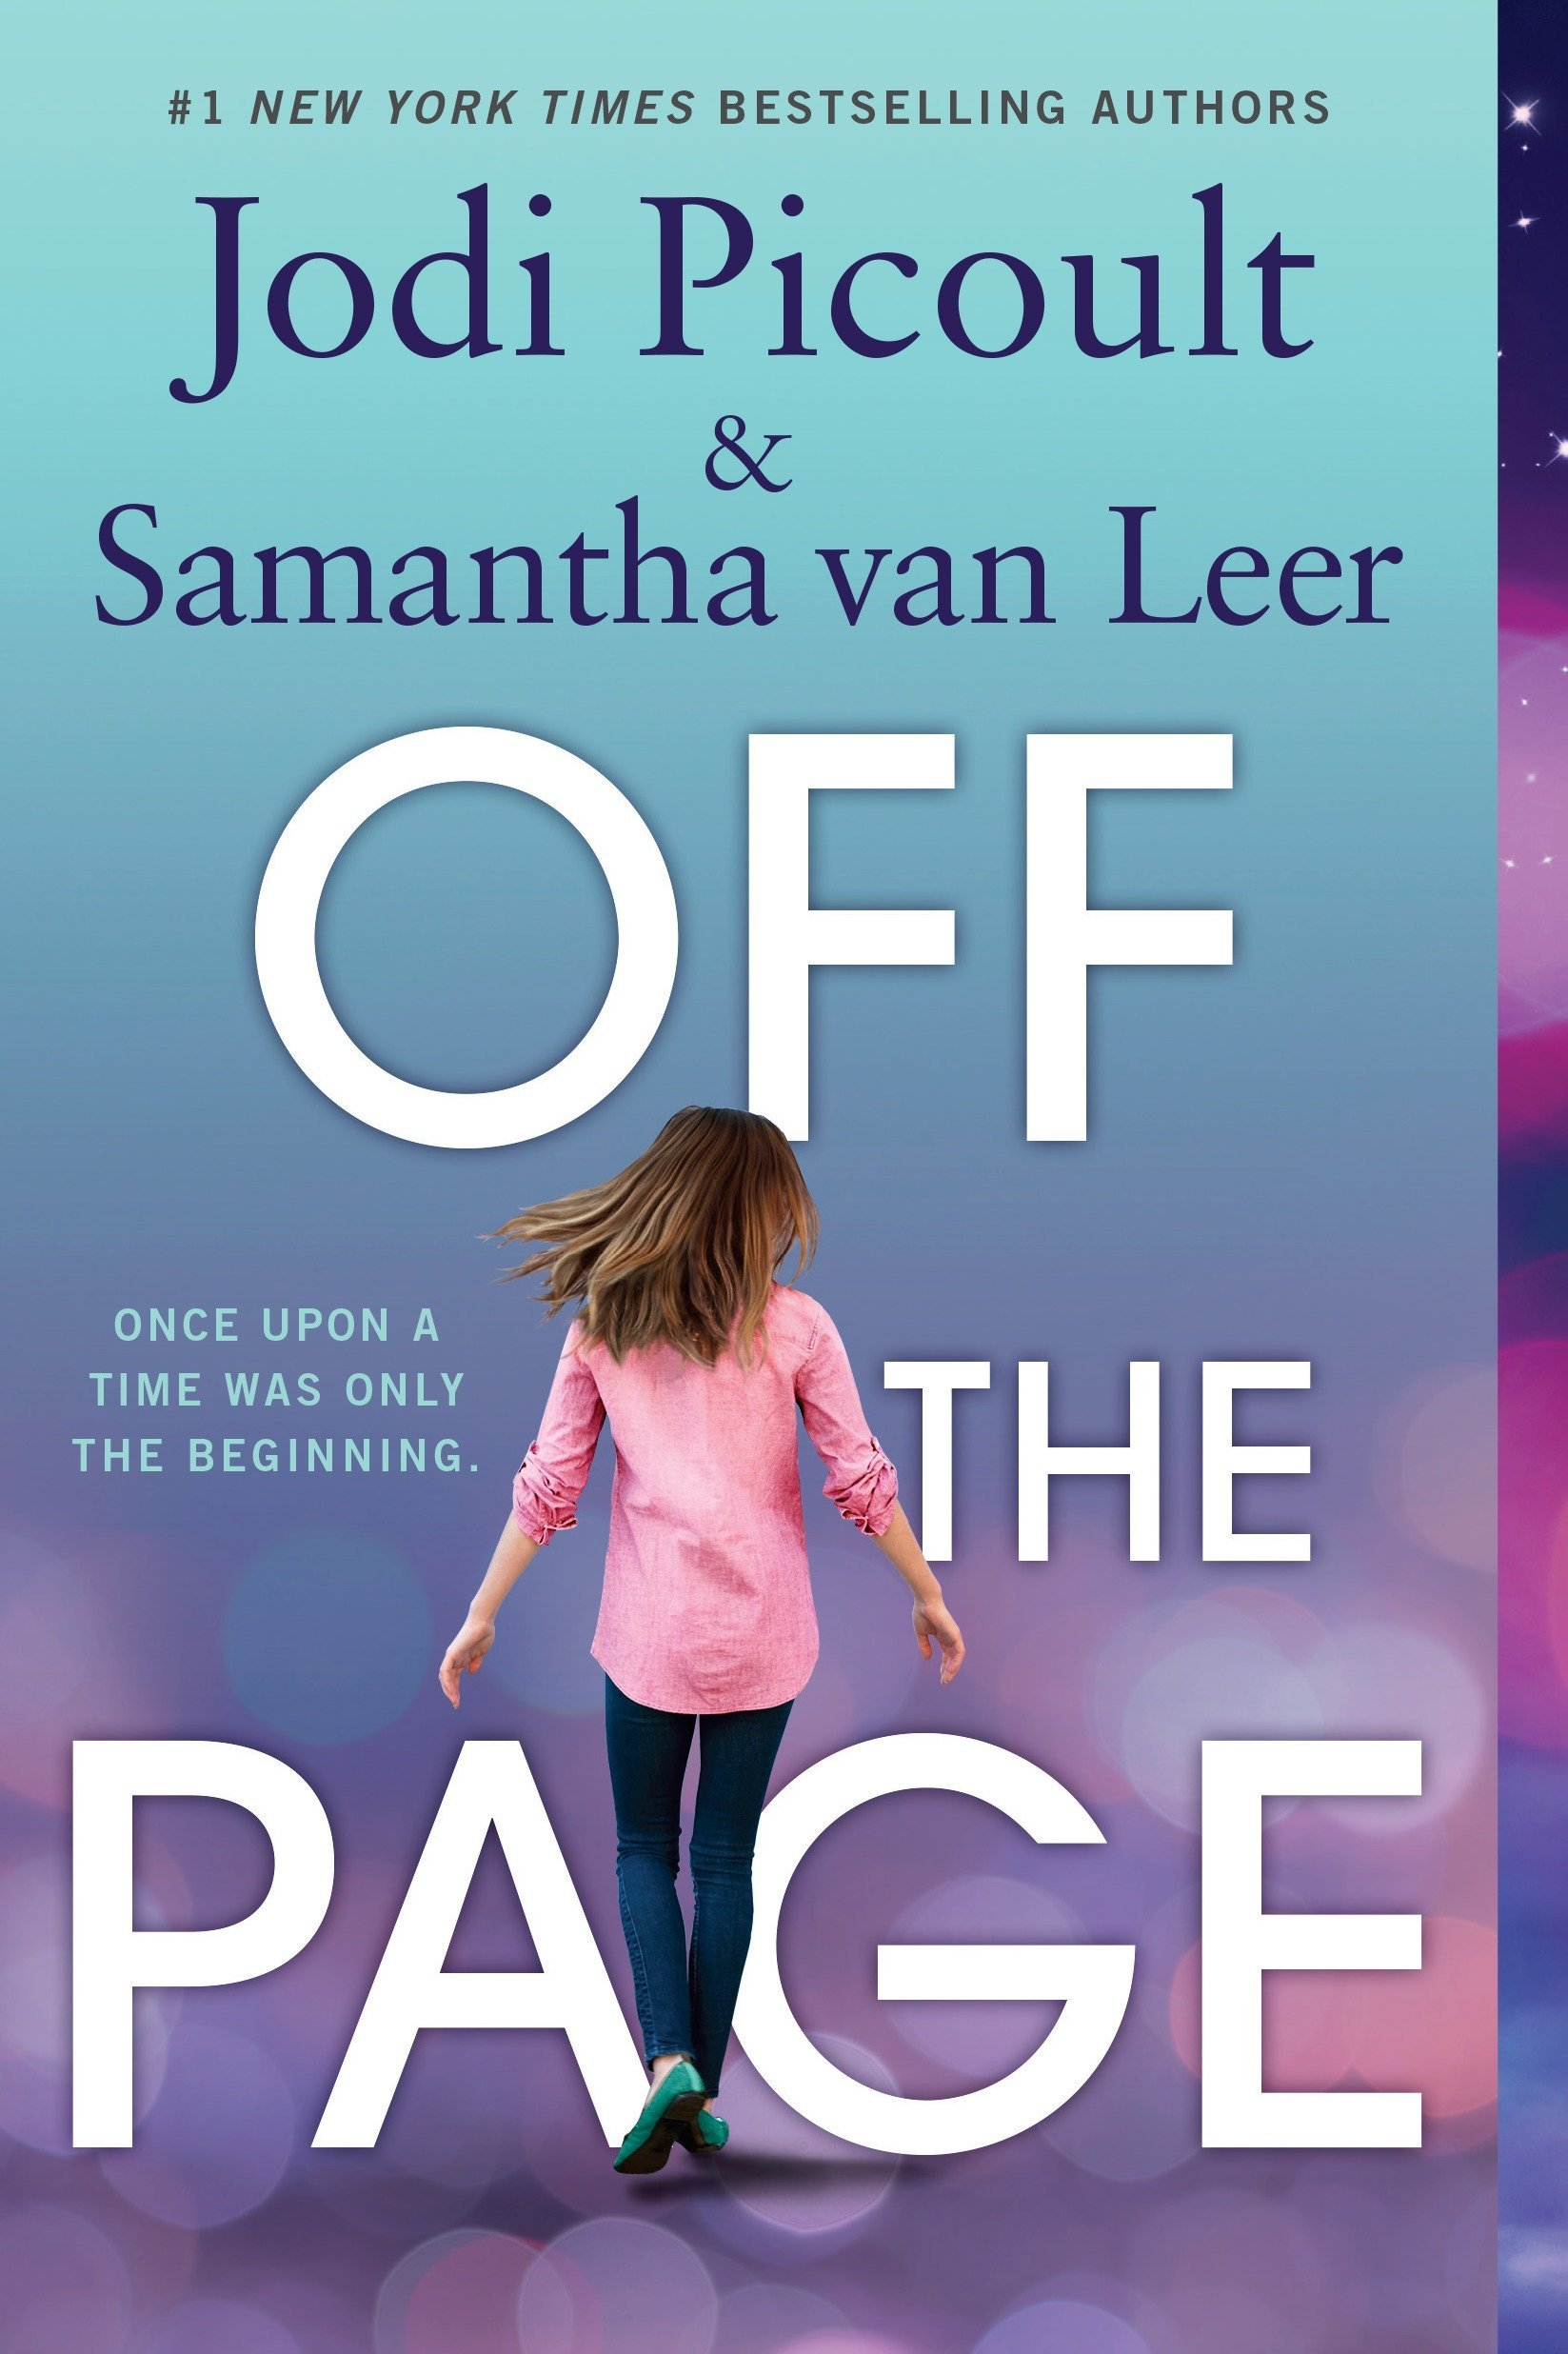 Amazon.com: Off the Page (9780553535594): Jodi Picoult, Samantha van Leer,  Yvonne Gilbert: Books